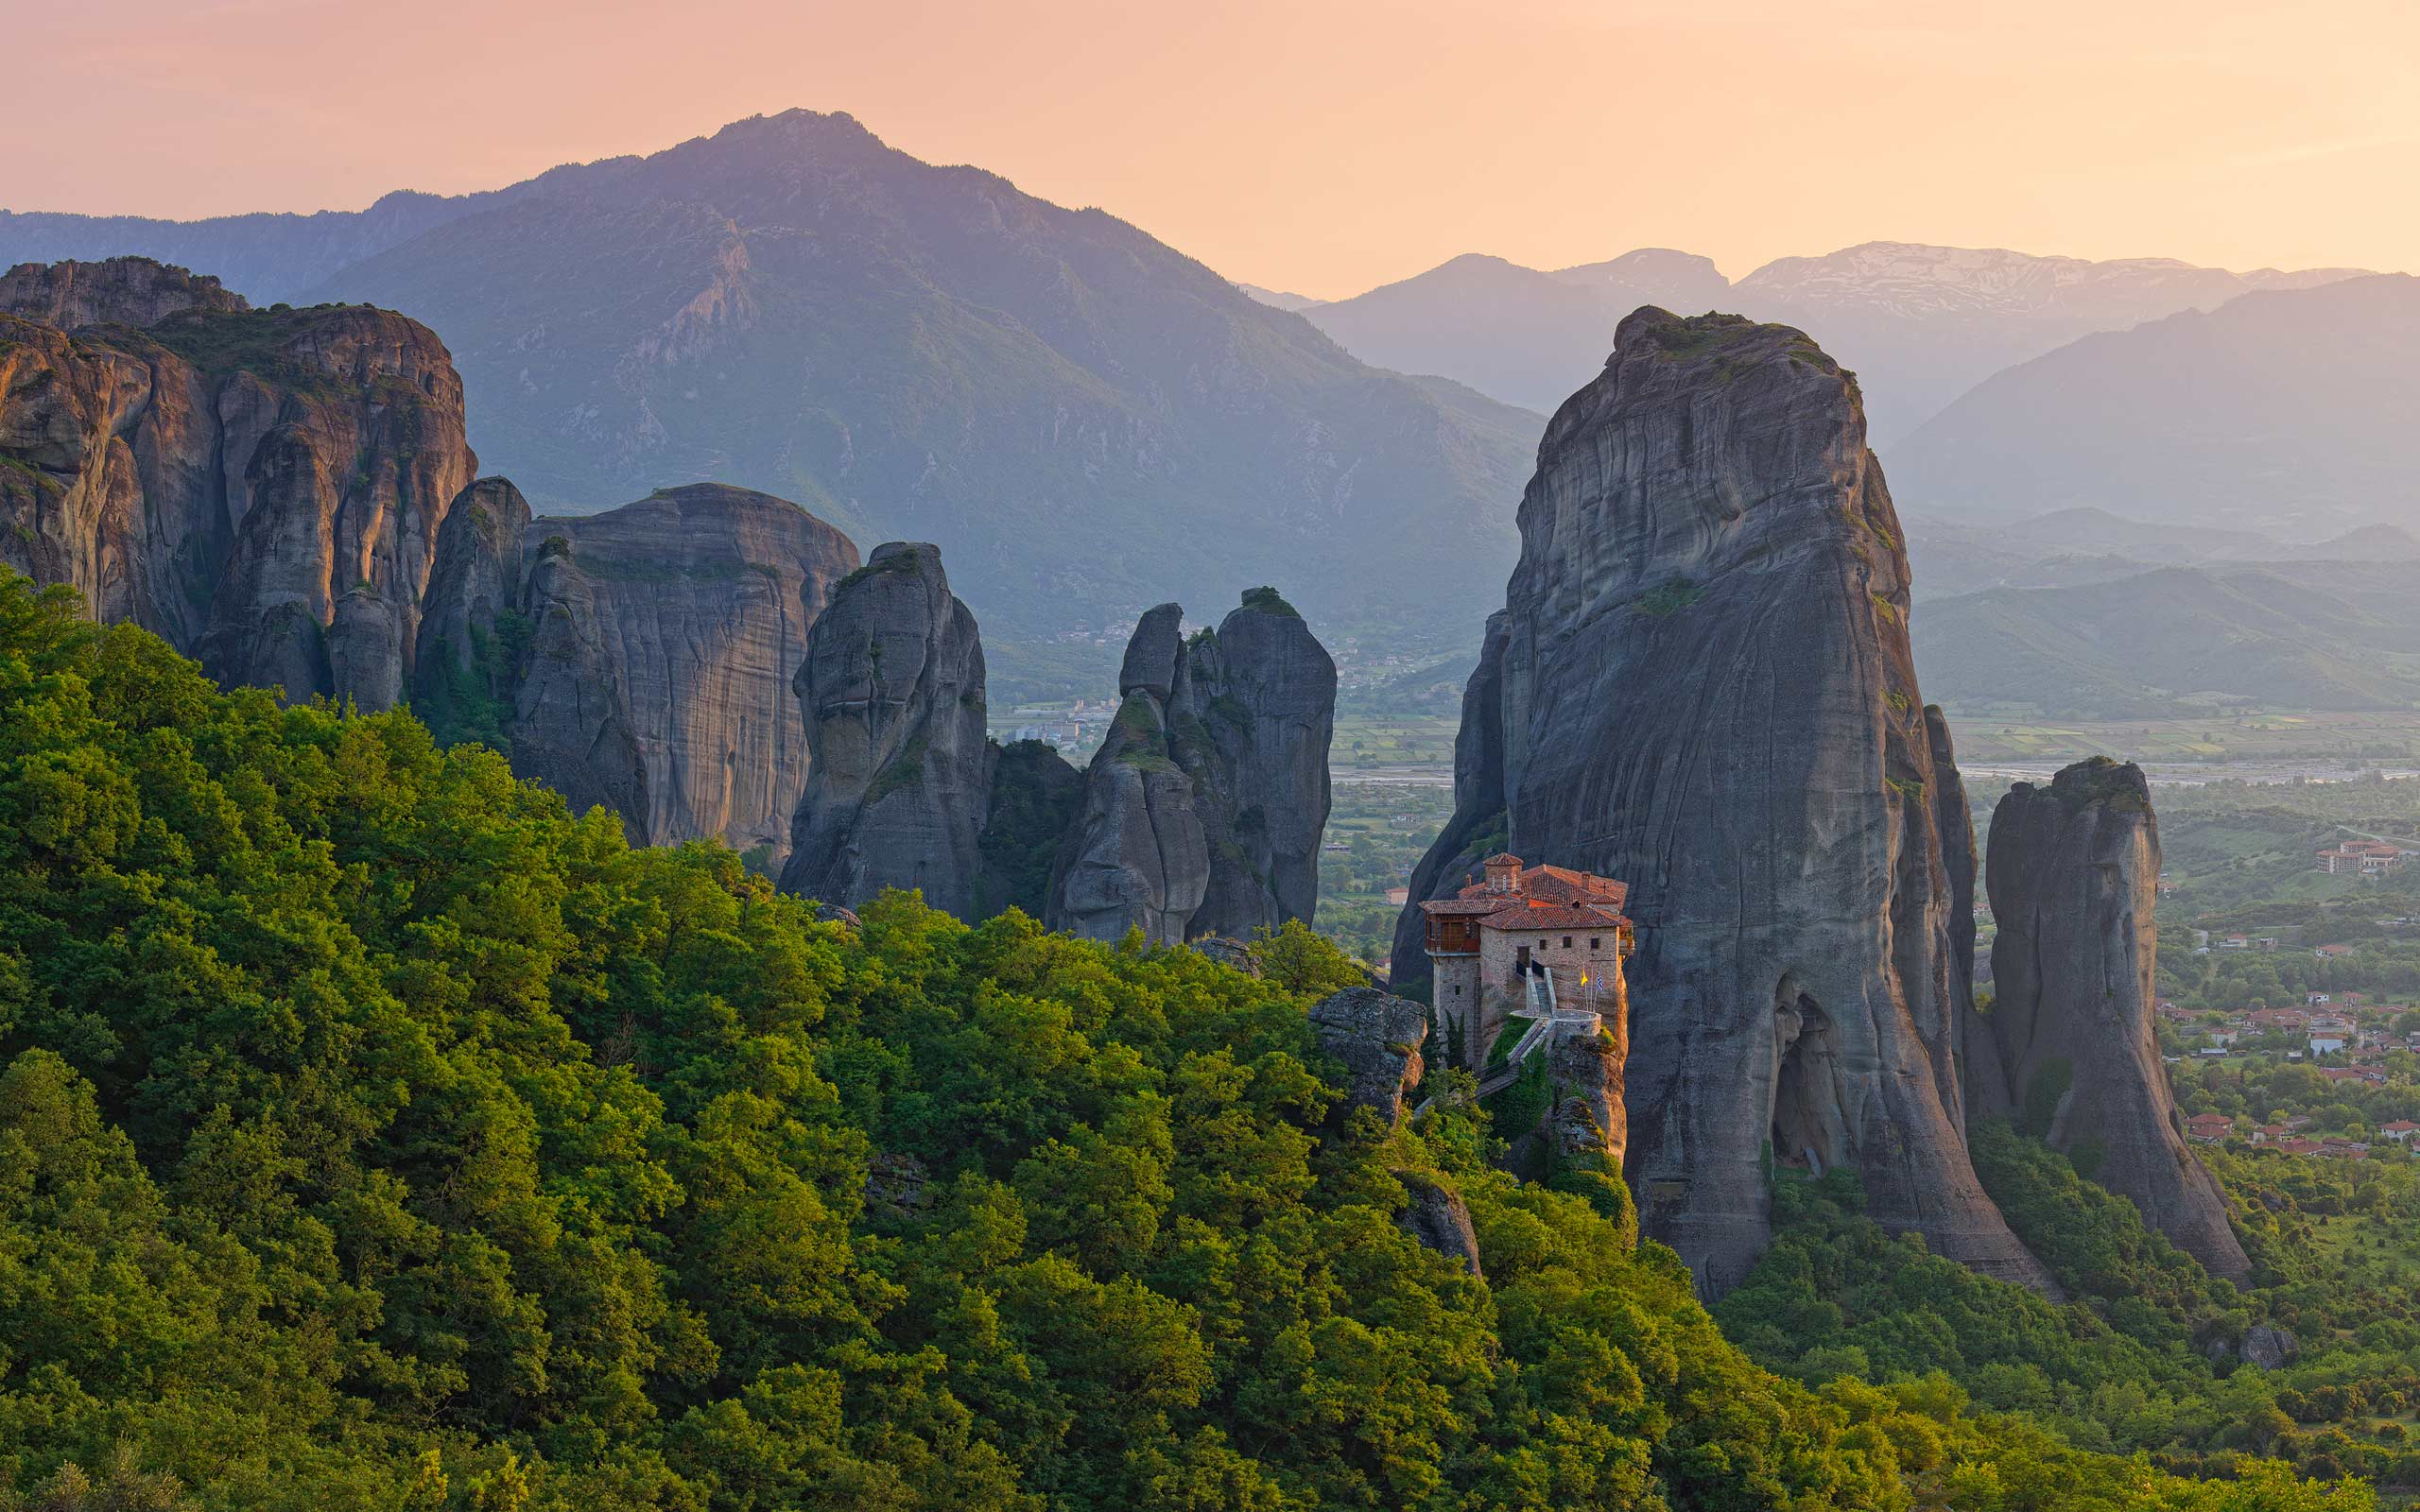 Roussanou Monastery at sunset, Meteora, Thessaly, Greece - Meteora-Monasteries-Greece - Mike Reyfman Photography